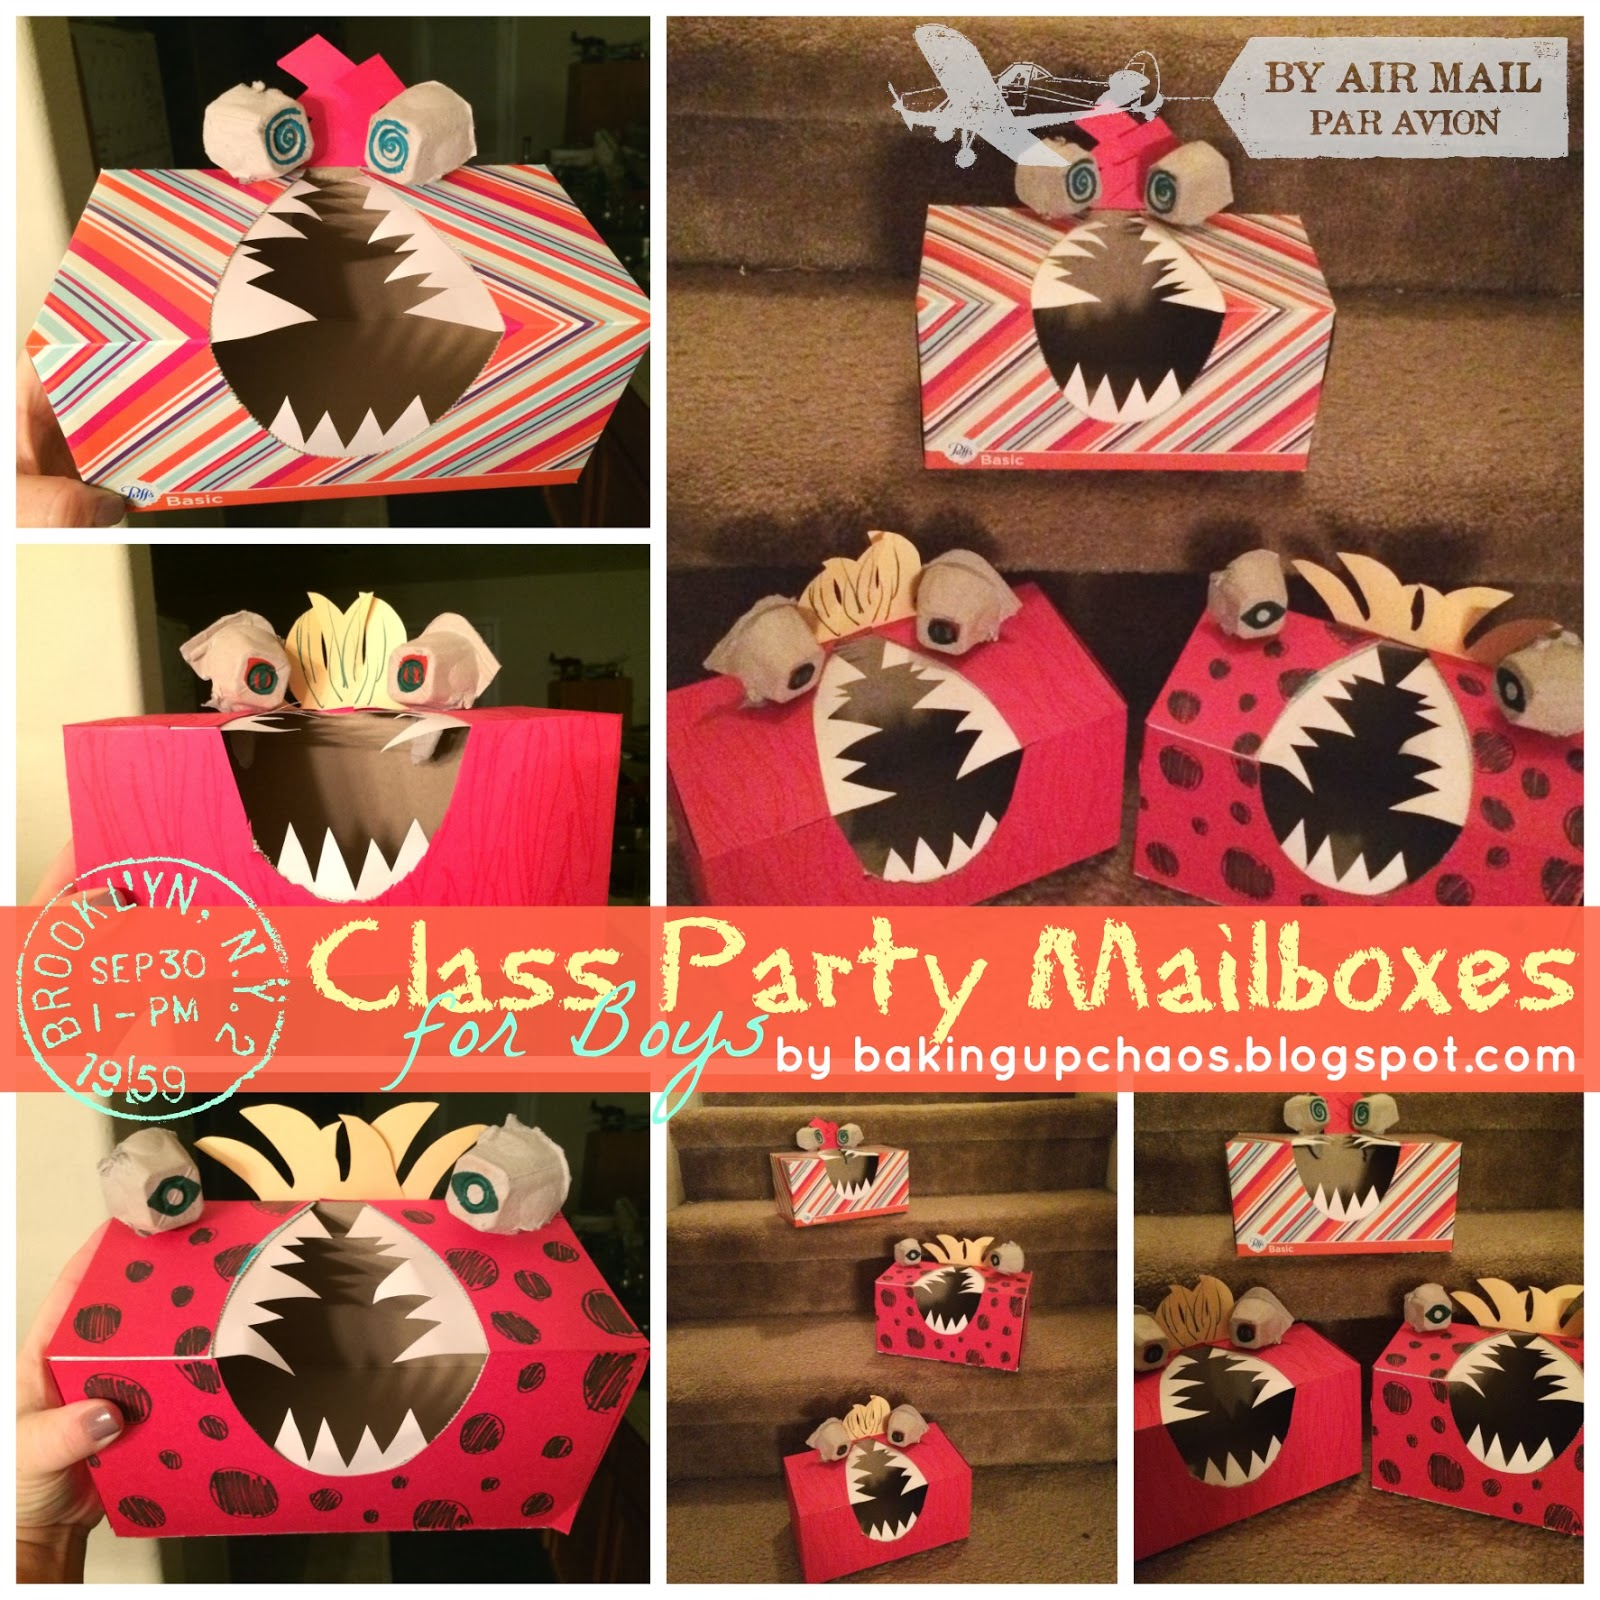 Class party mailboxes for boys by BakingUpChaos